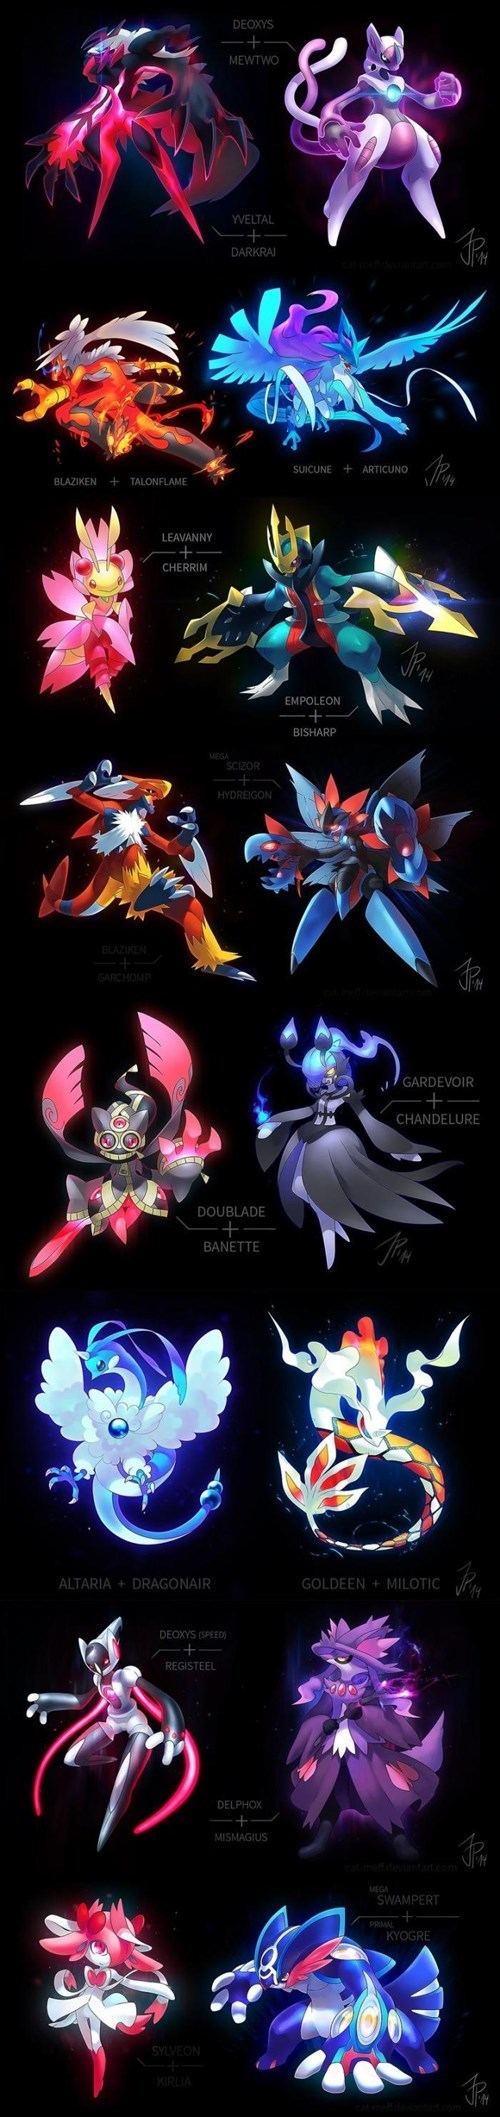 Pokémon pokemon fusions - 8277640960